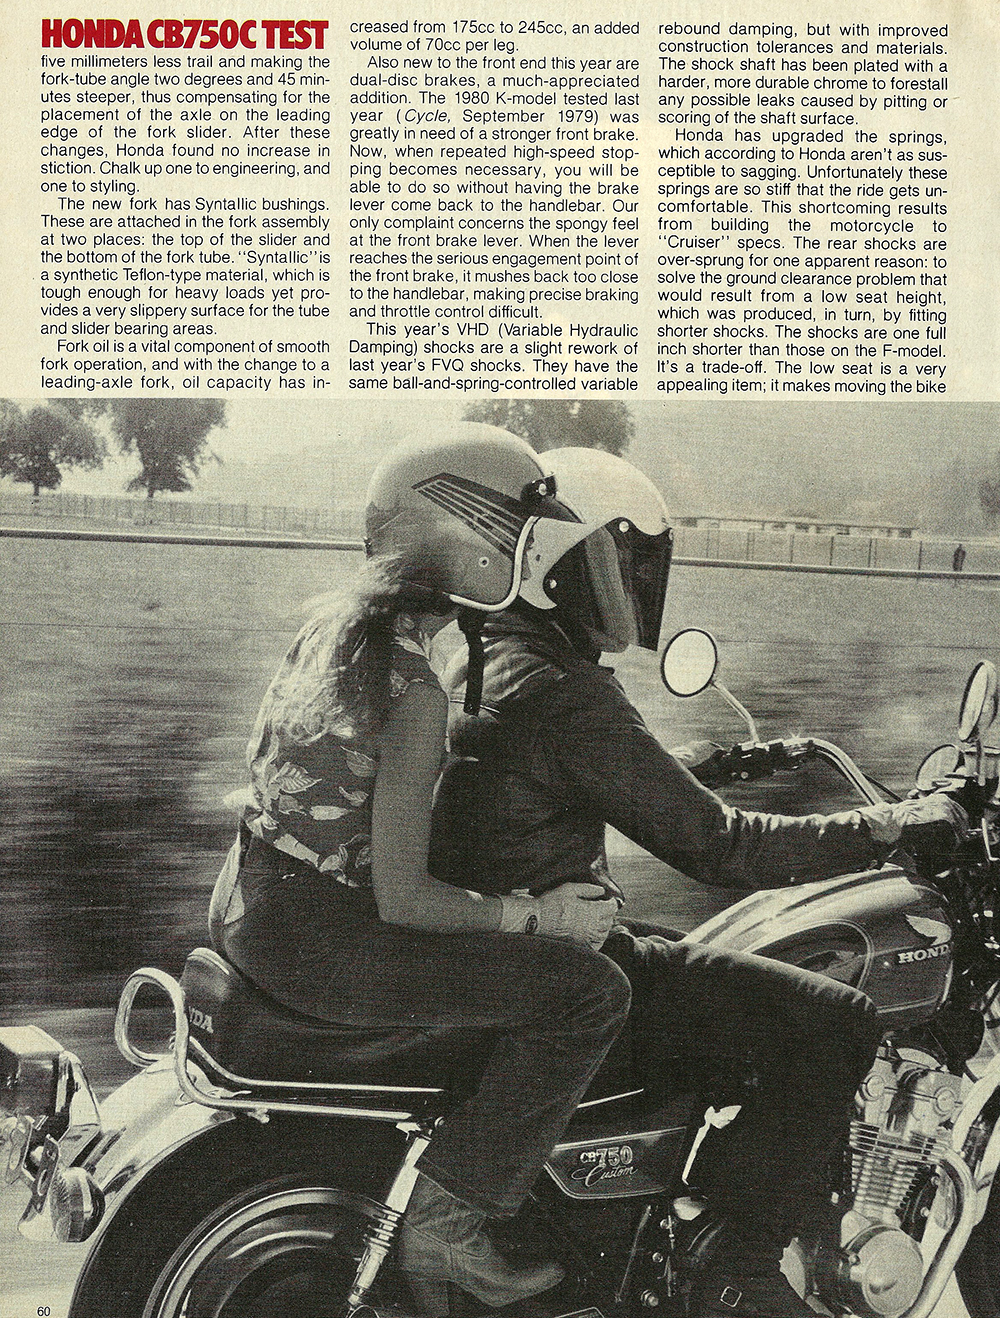 1980 Honda CB750C road test 03.jpg